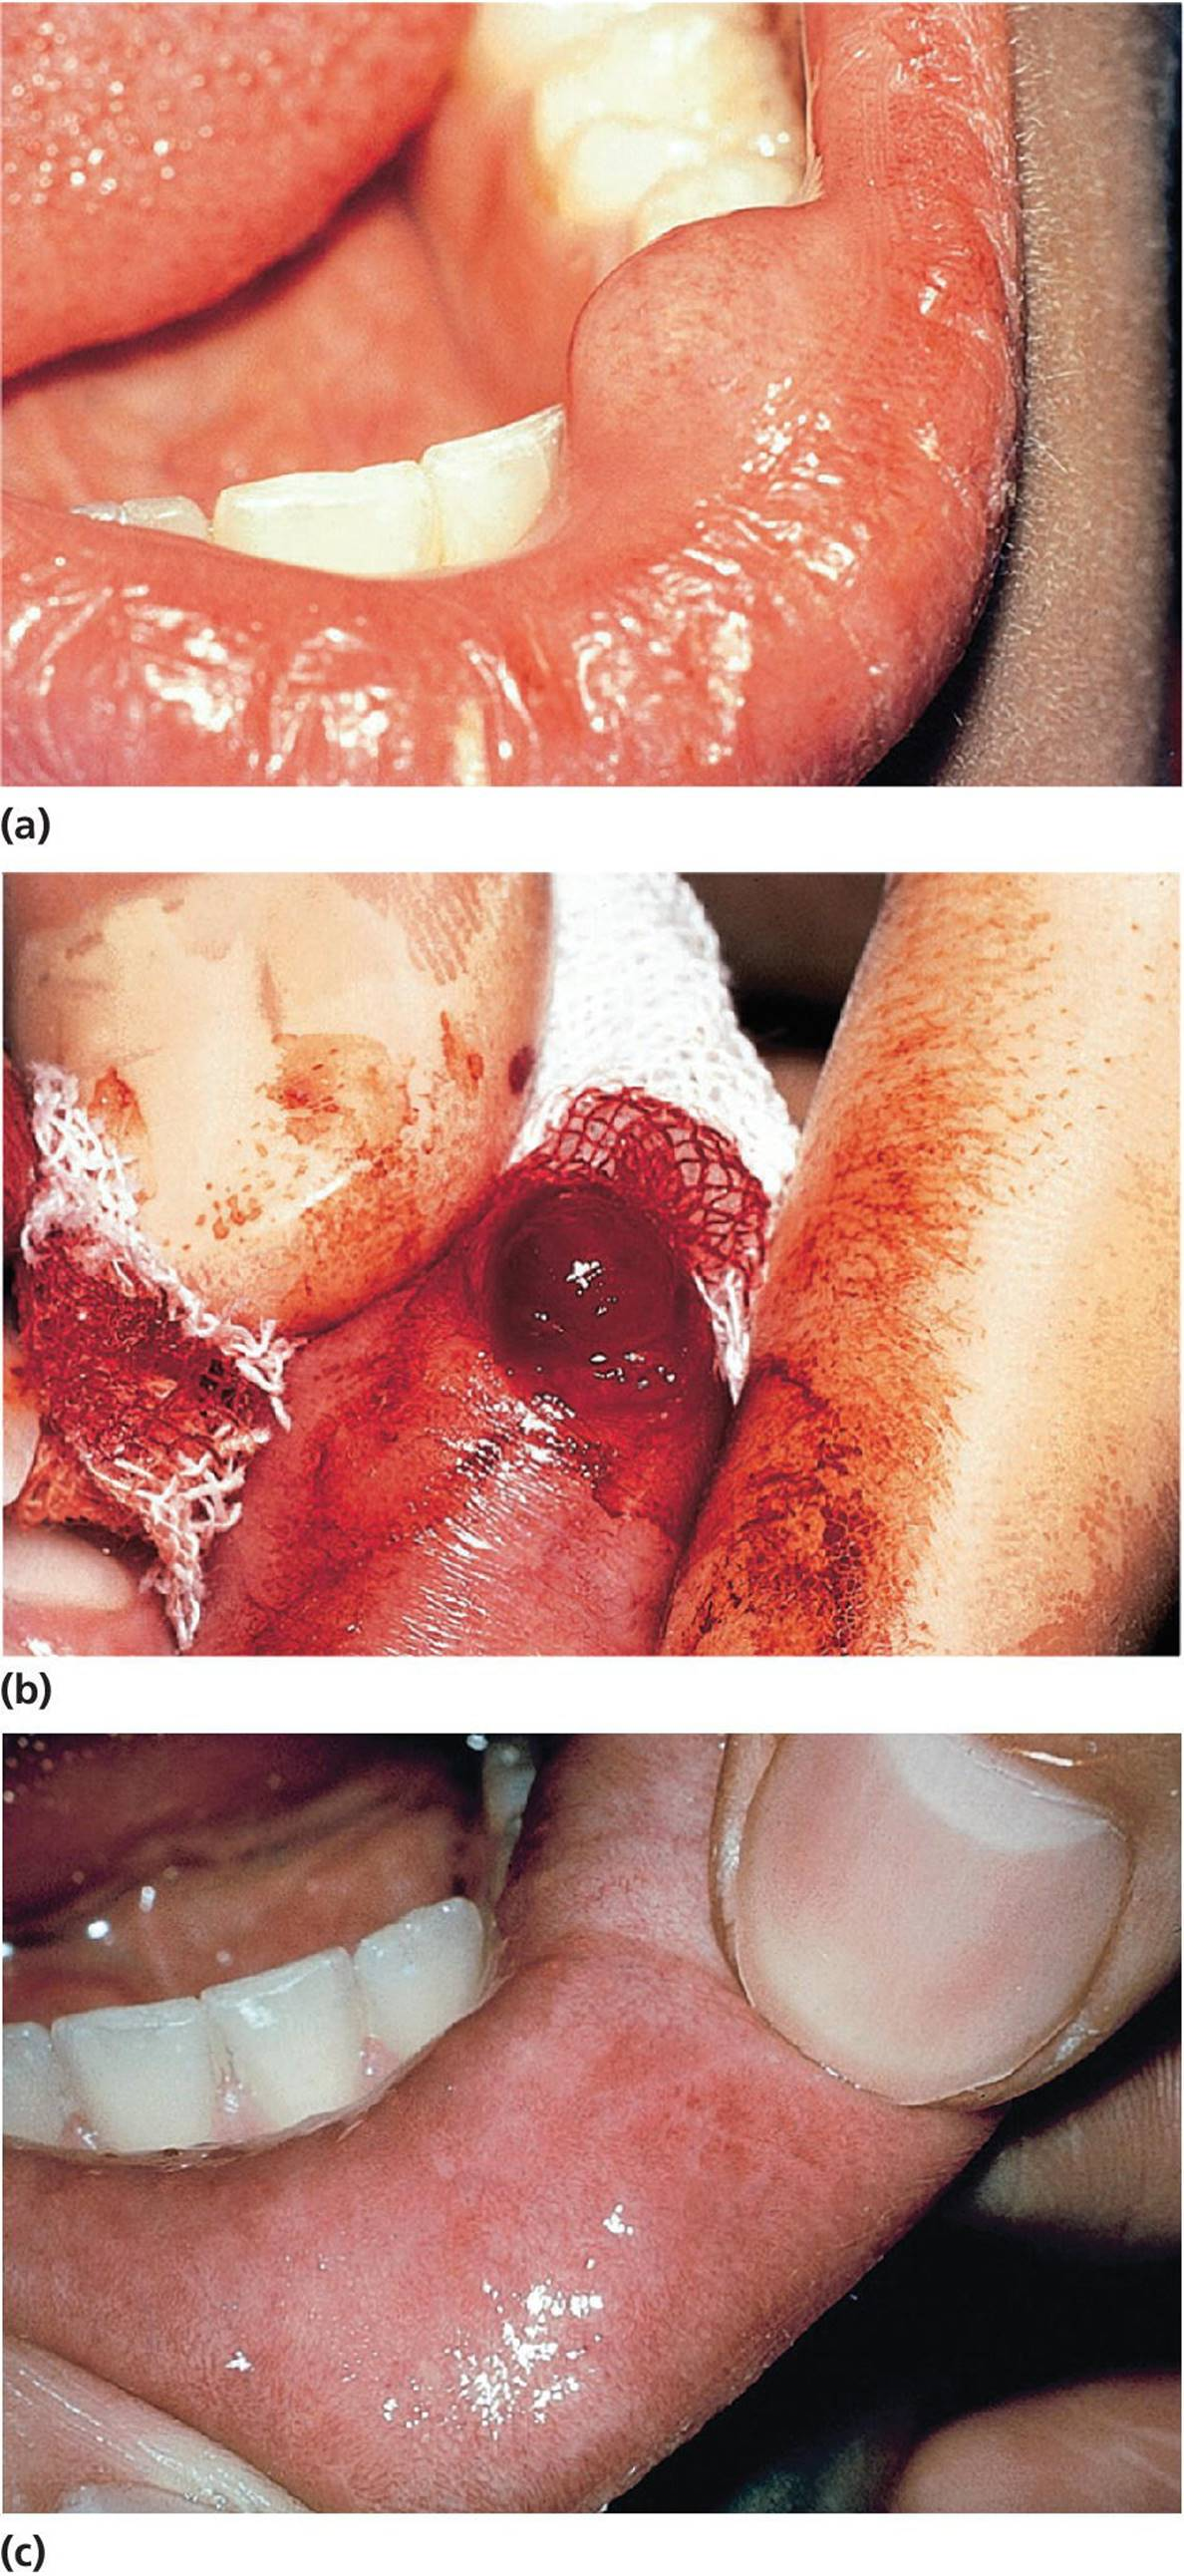 Oral cyst pictures — photo 6